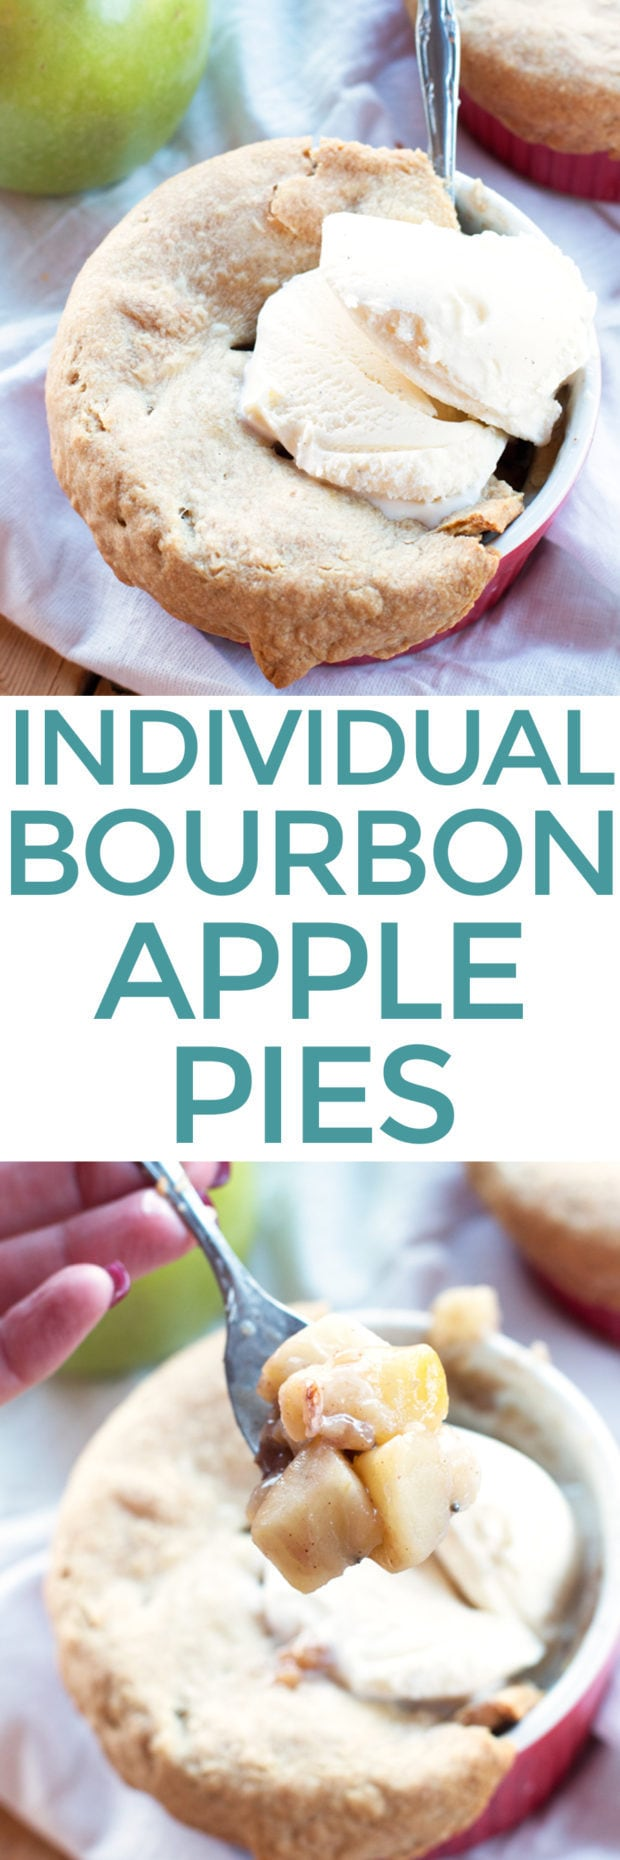 Individual Bourbon Apple Pies | cakenknife.com #dessert #thanksgiving #fall #applepie